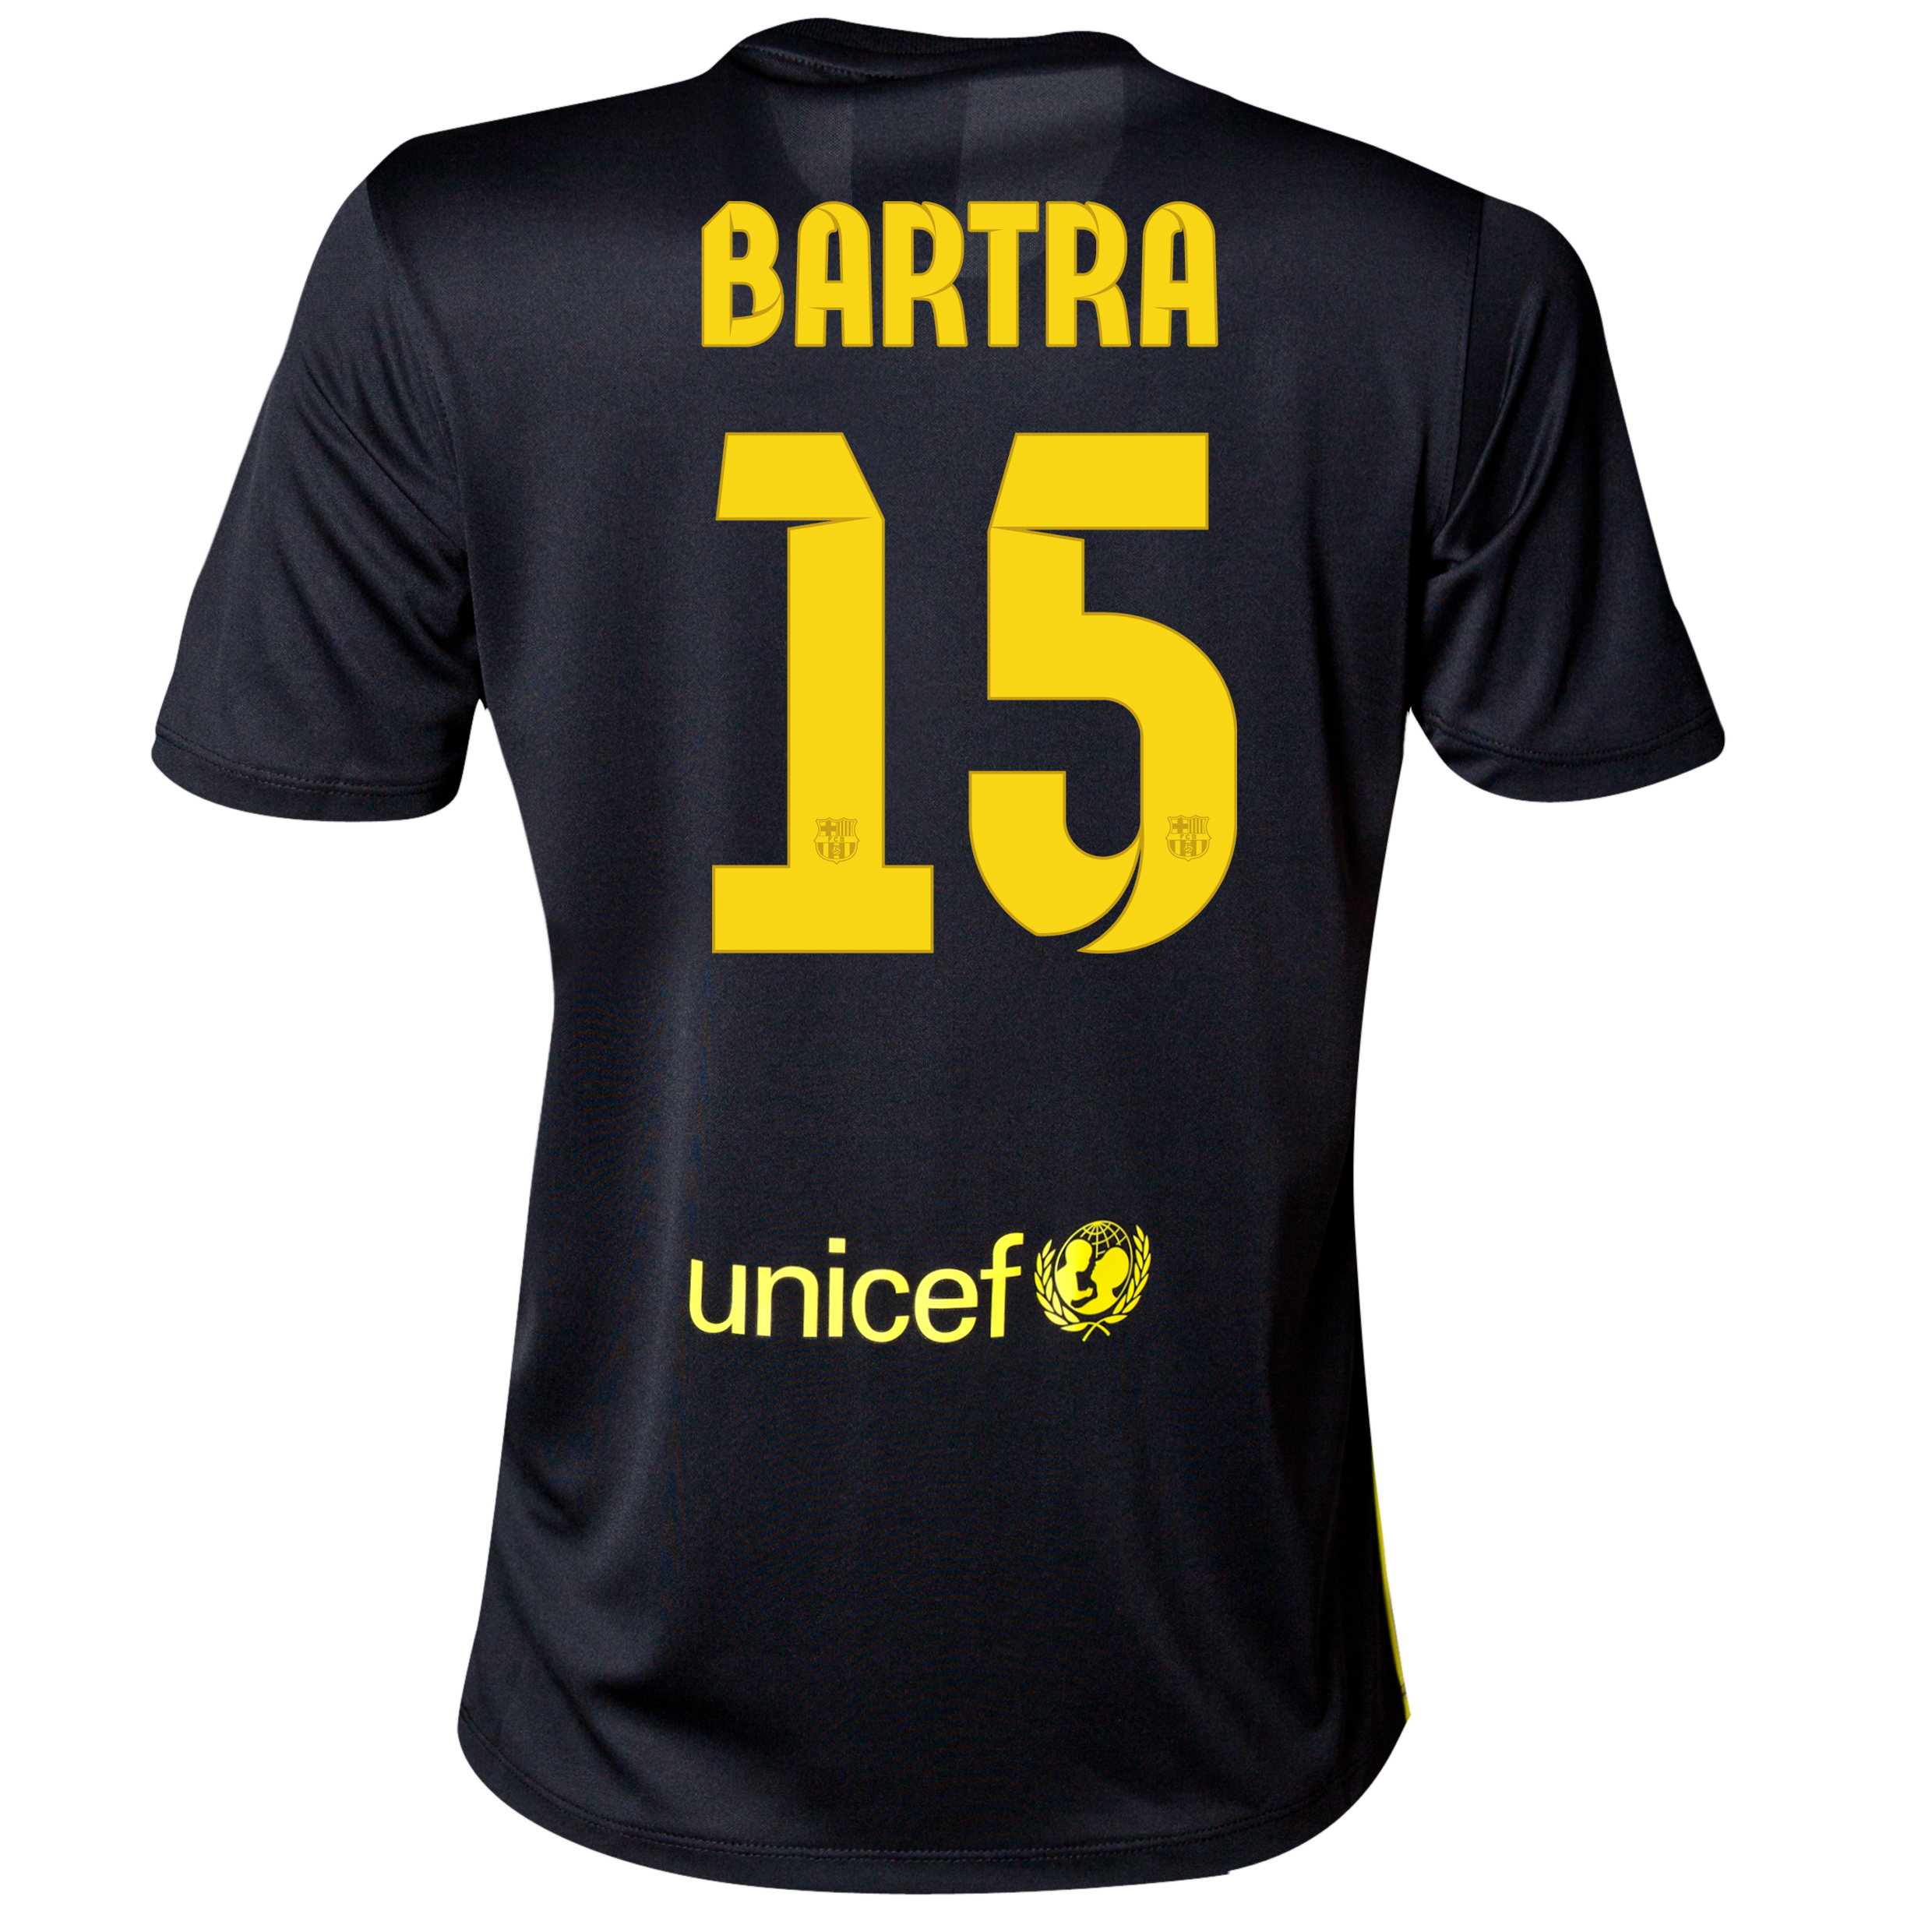 Barcelona Third Shirt 2013/14 - Womens with Bartra 15 printing